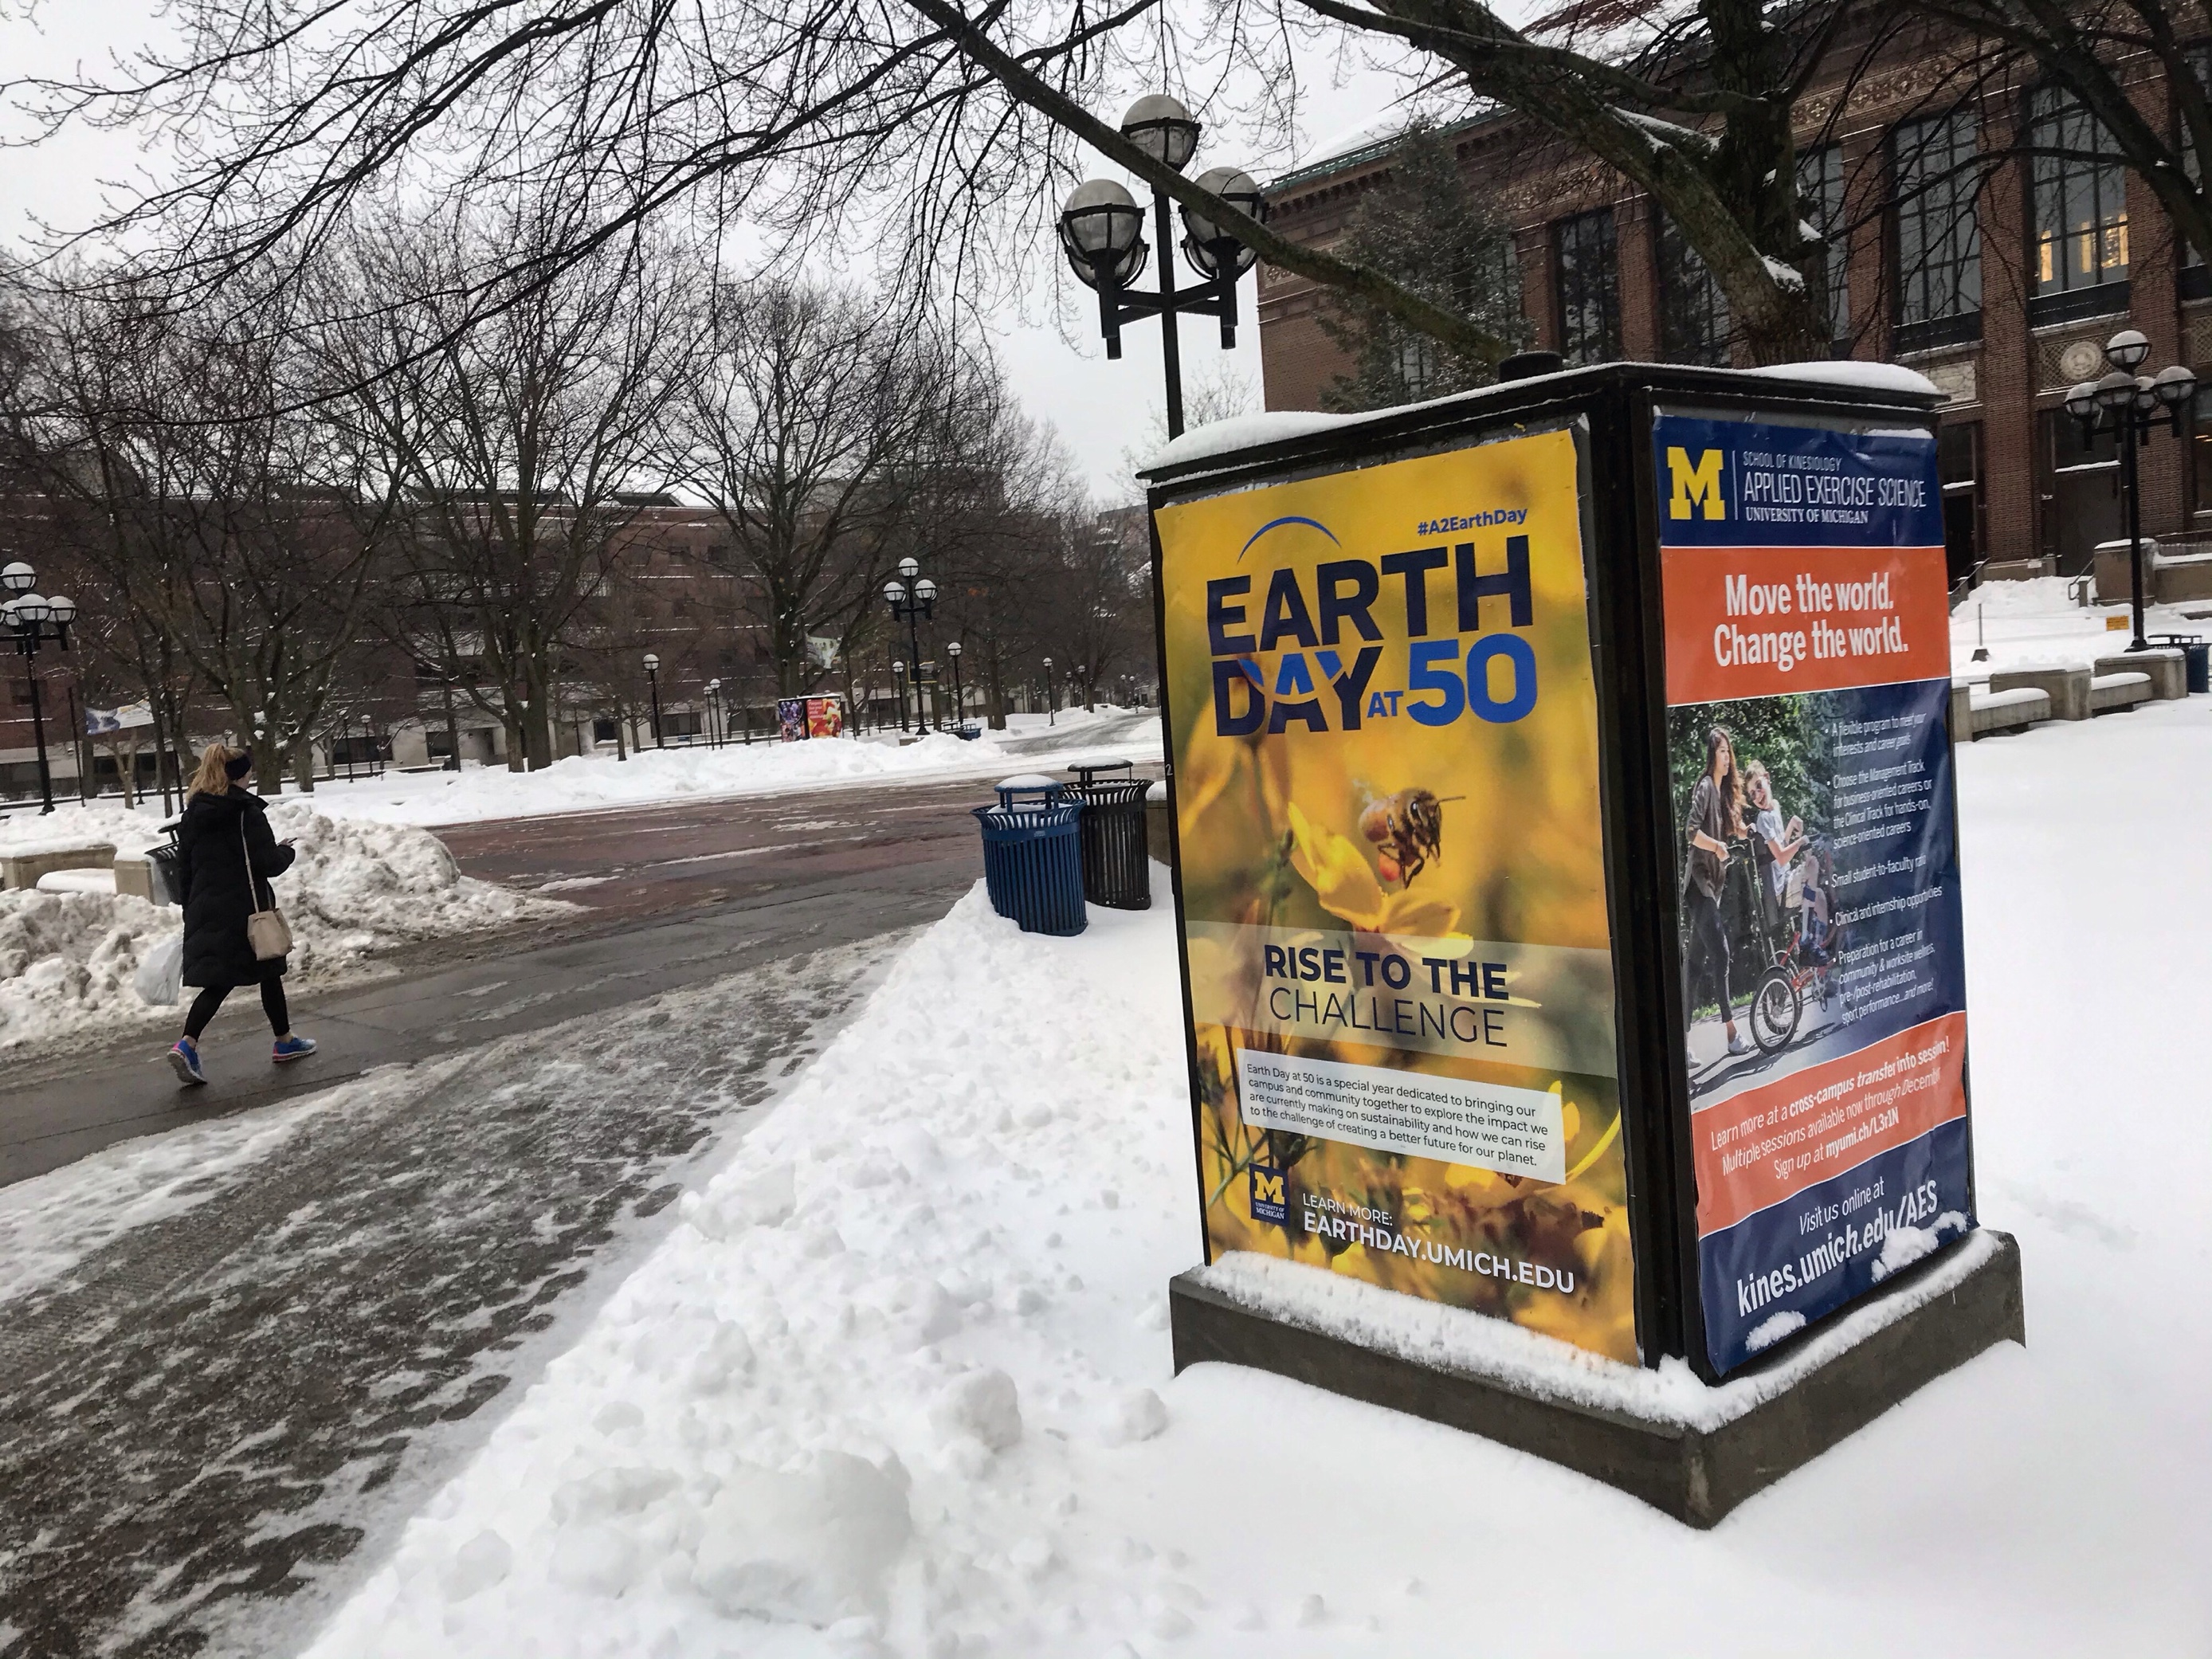 University of Michigan plans teach-in, climate summit ahead of 50th Earth Day anniversary